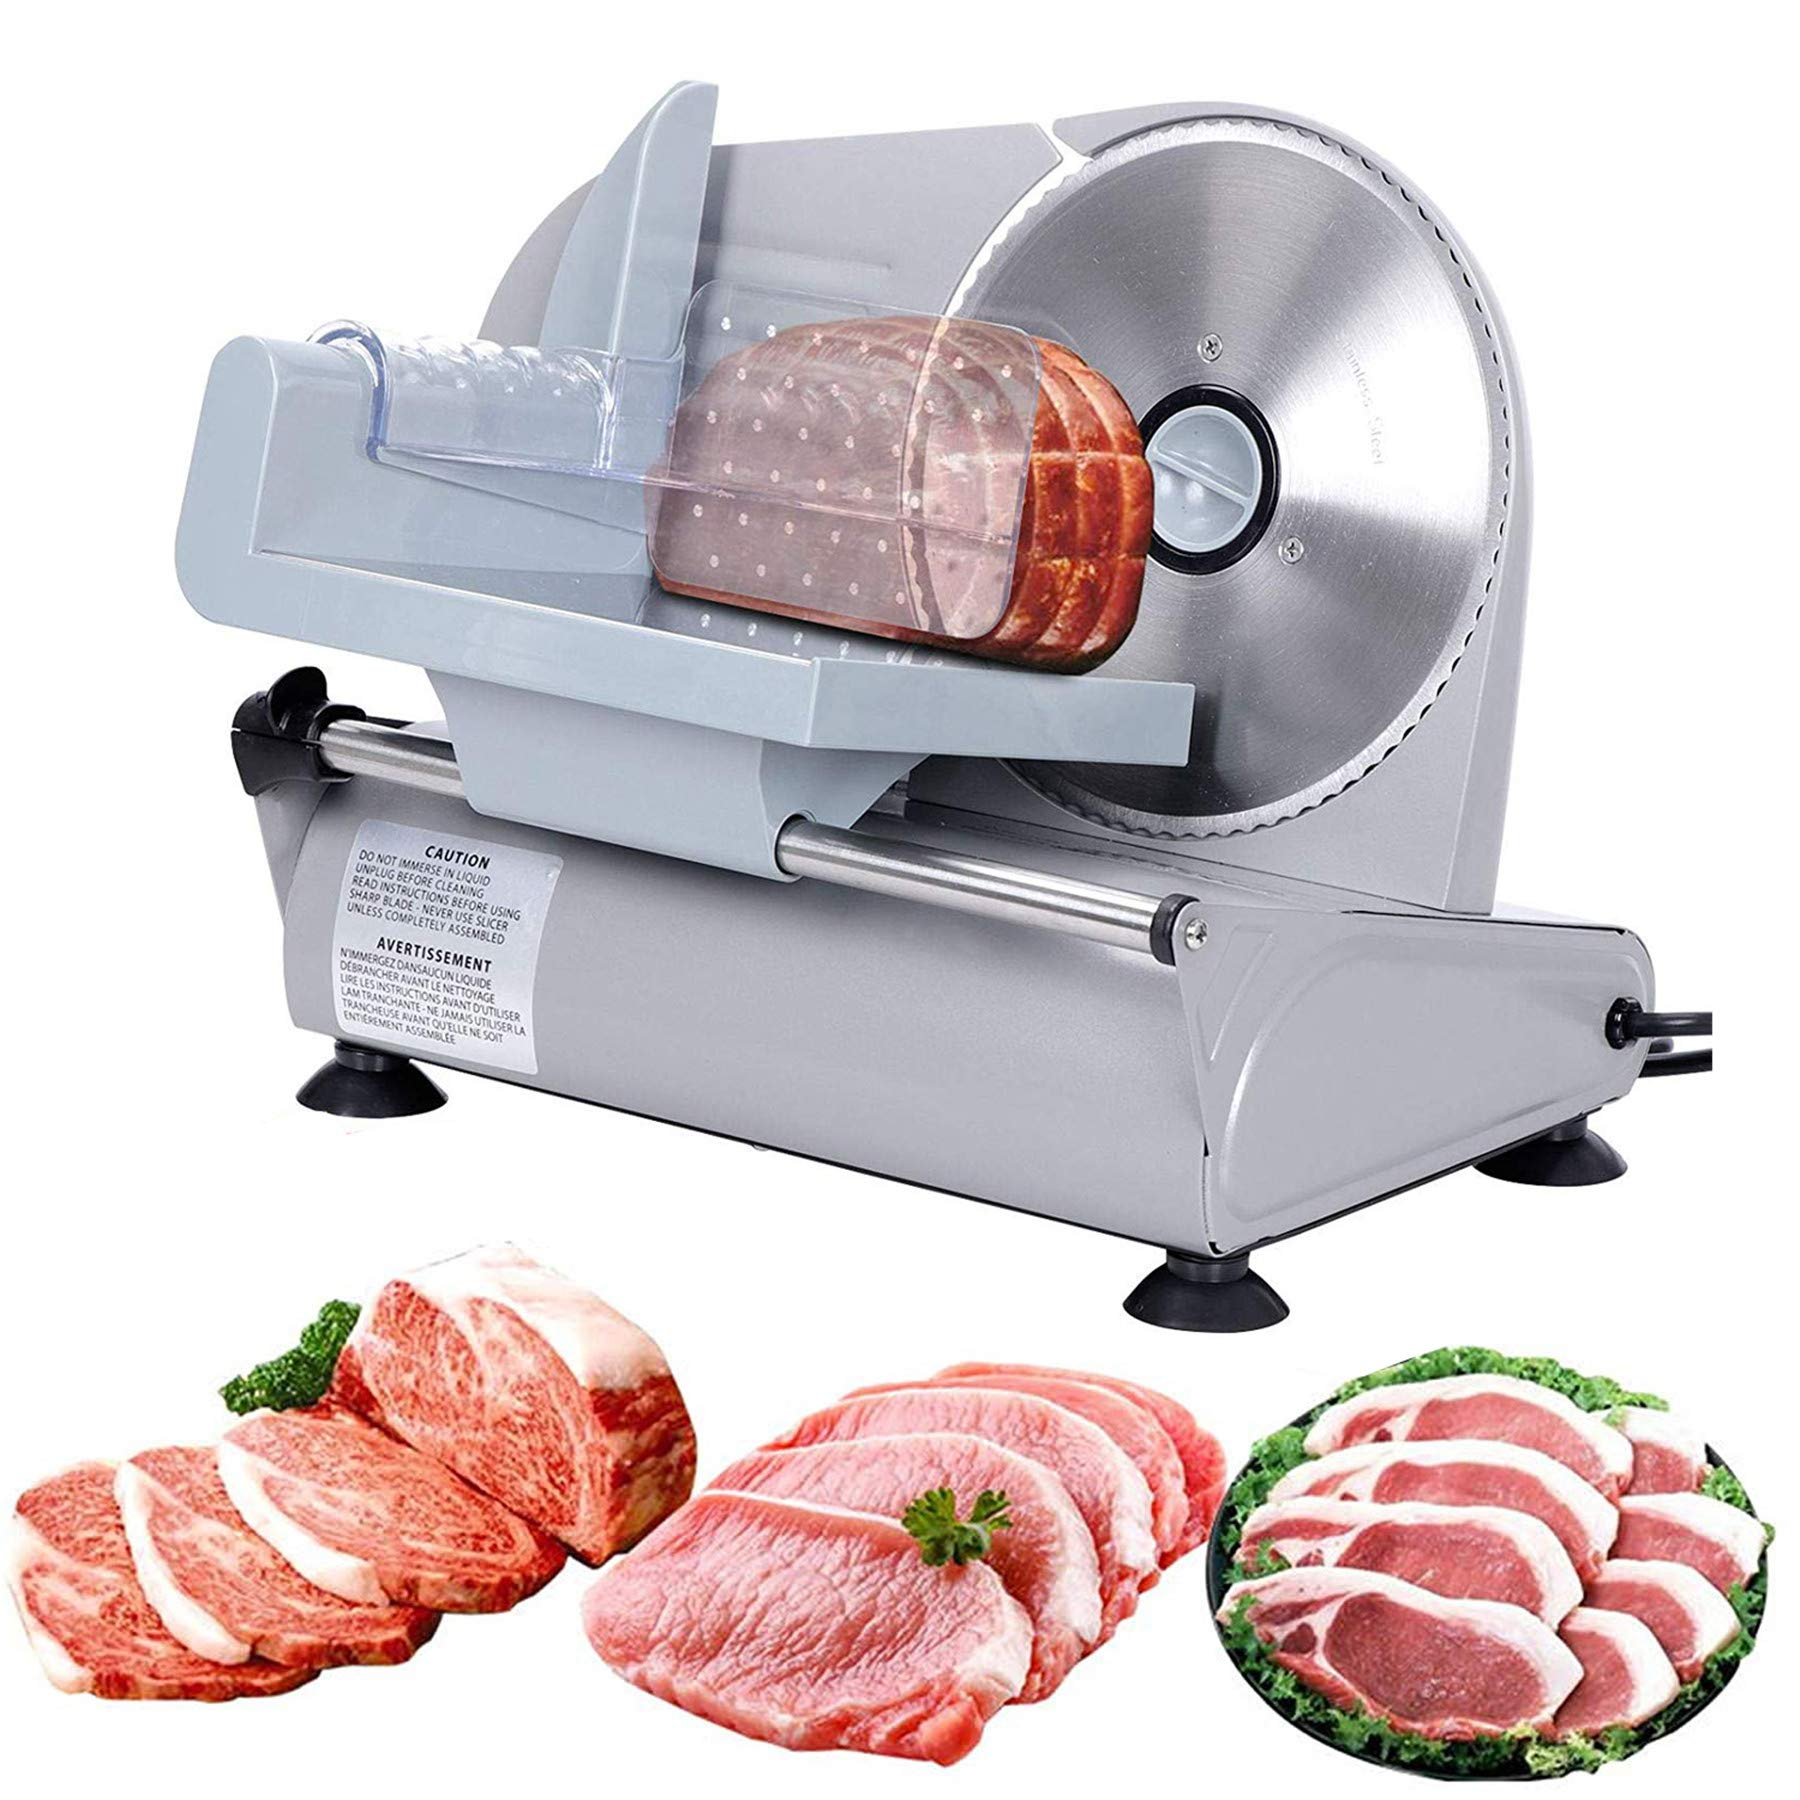 F2C 7.5'' Electric Food Meat Slicer| Bacon Bread Fruit Vegetable Veggies Meat Deli Ham Food Cheese Slicer| Stainless Steel Serrated Blade| 150W Food Meat Shredder Cutter Slicer Home Commercial Kitchen Pro by F2C